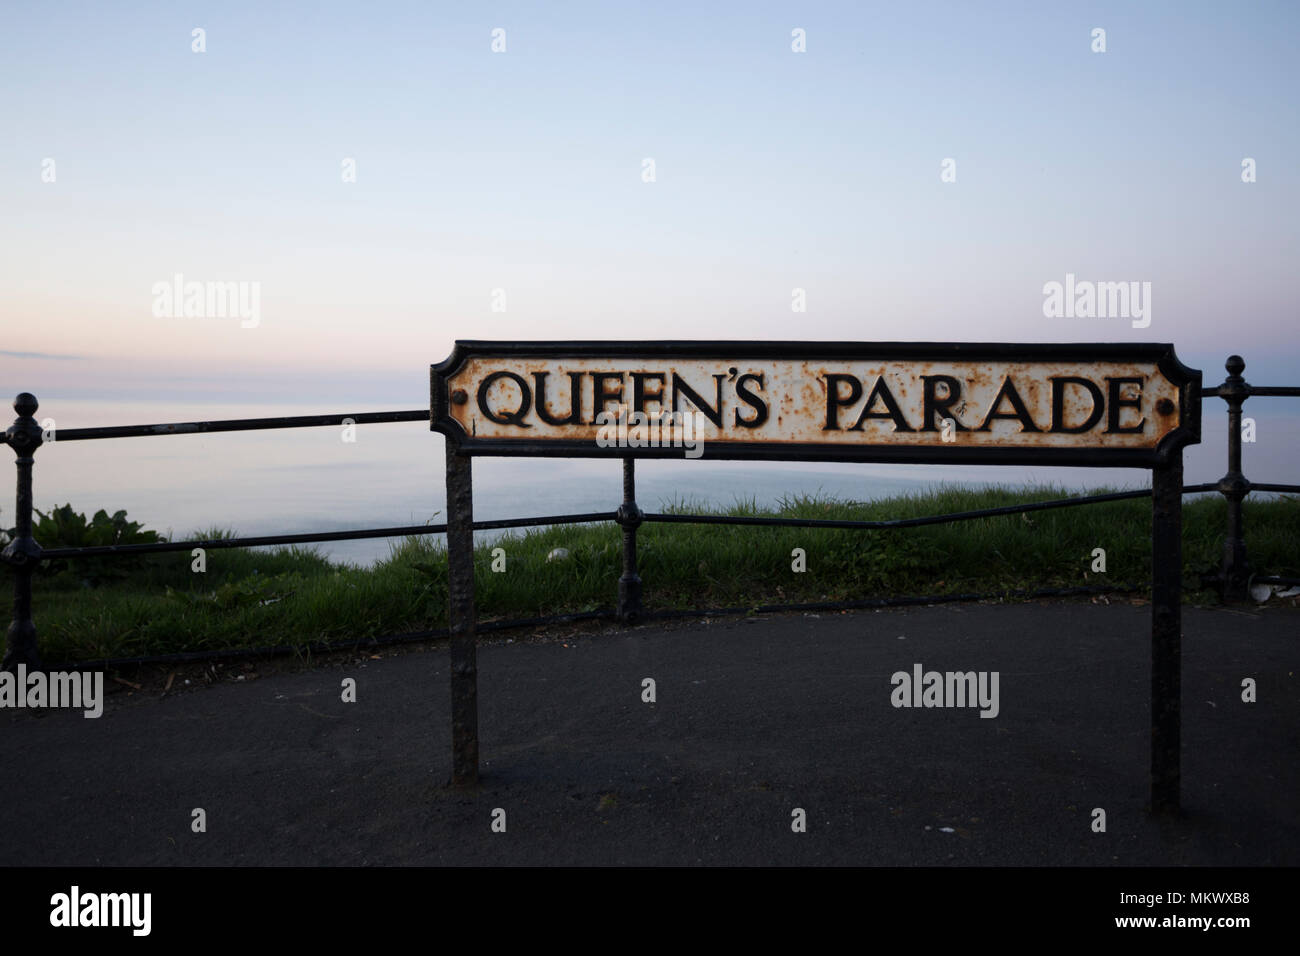 Queens Parade street sign in Scarborough , Yorkshire,UK.Overlooking the beautiful ocean. - Stock Image